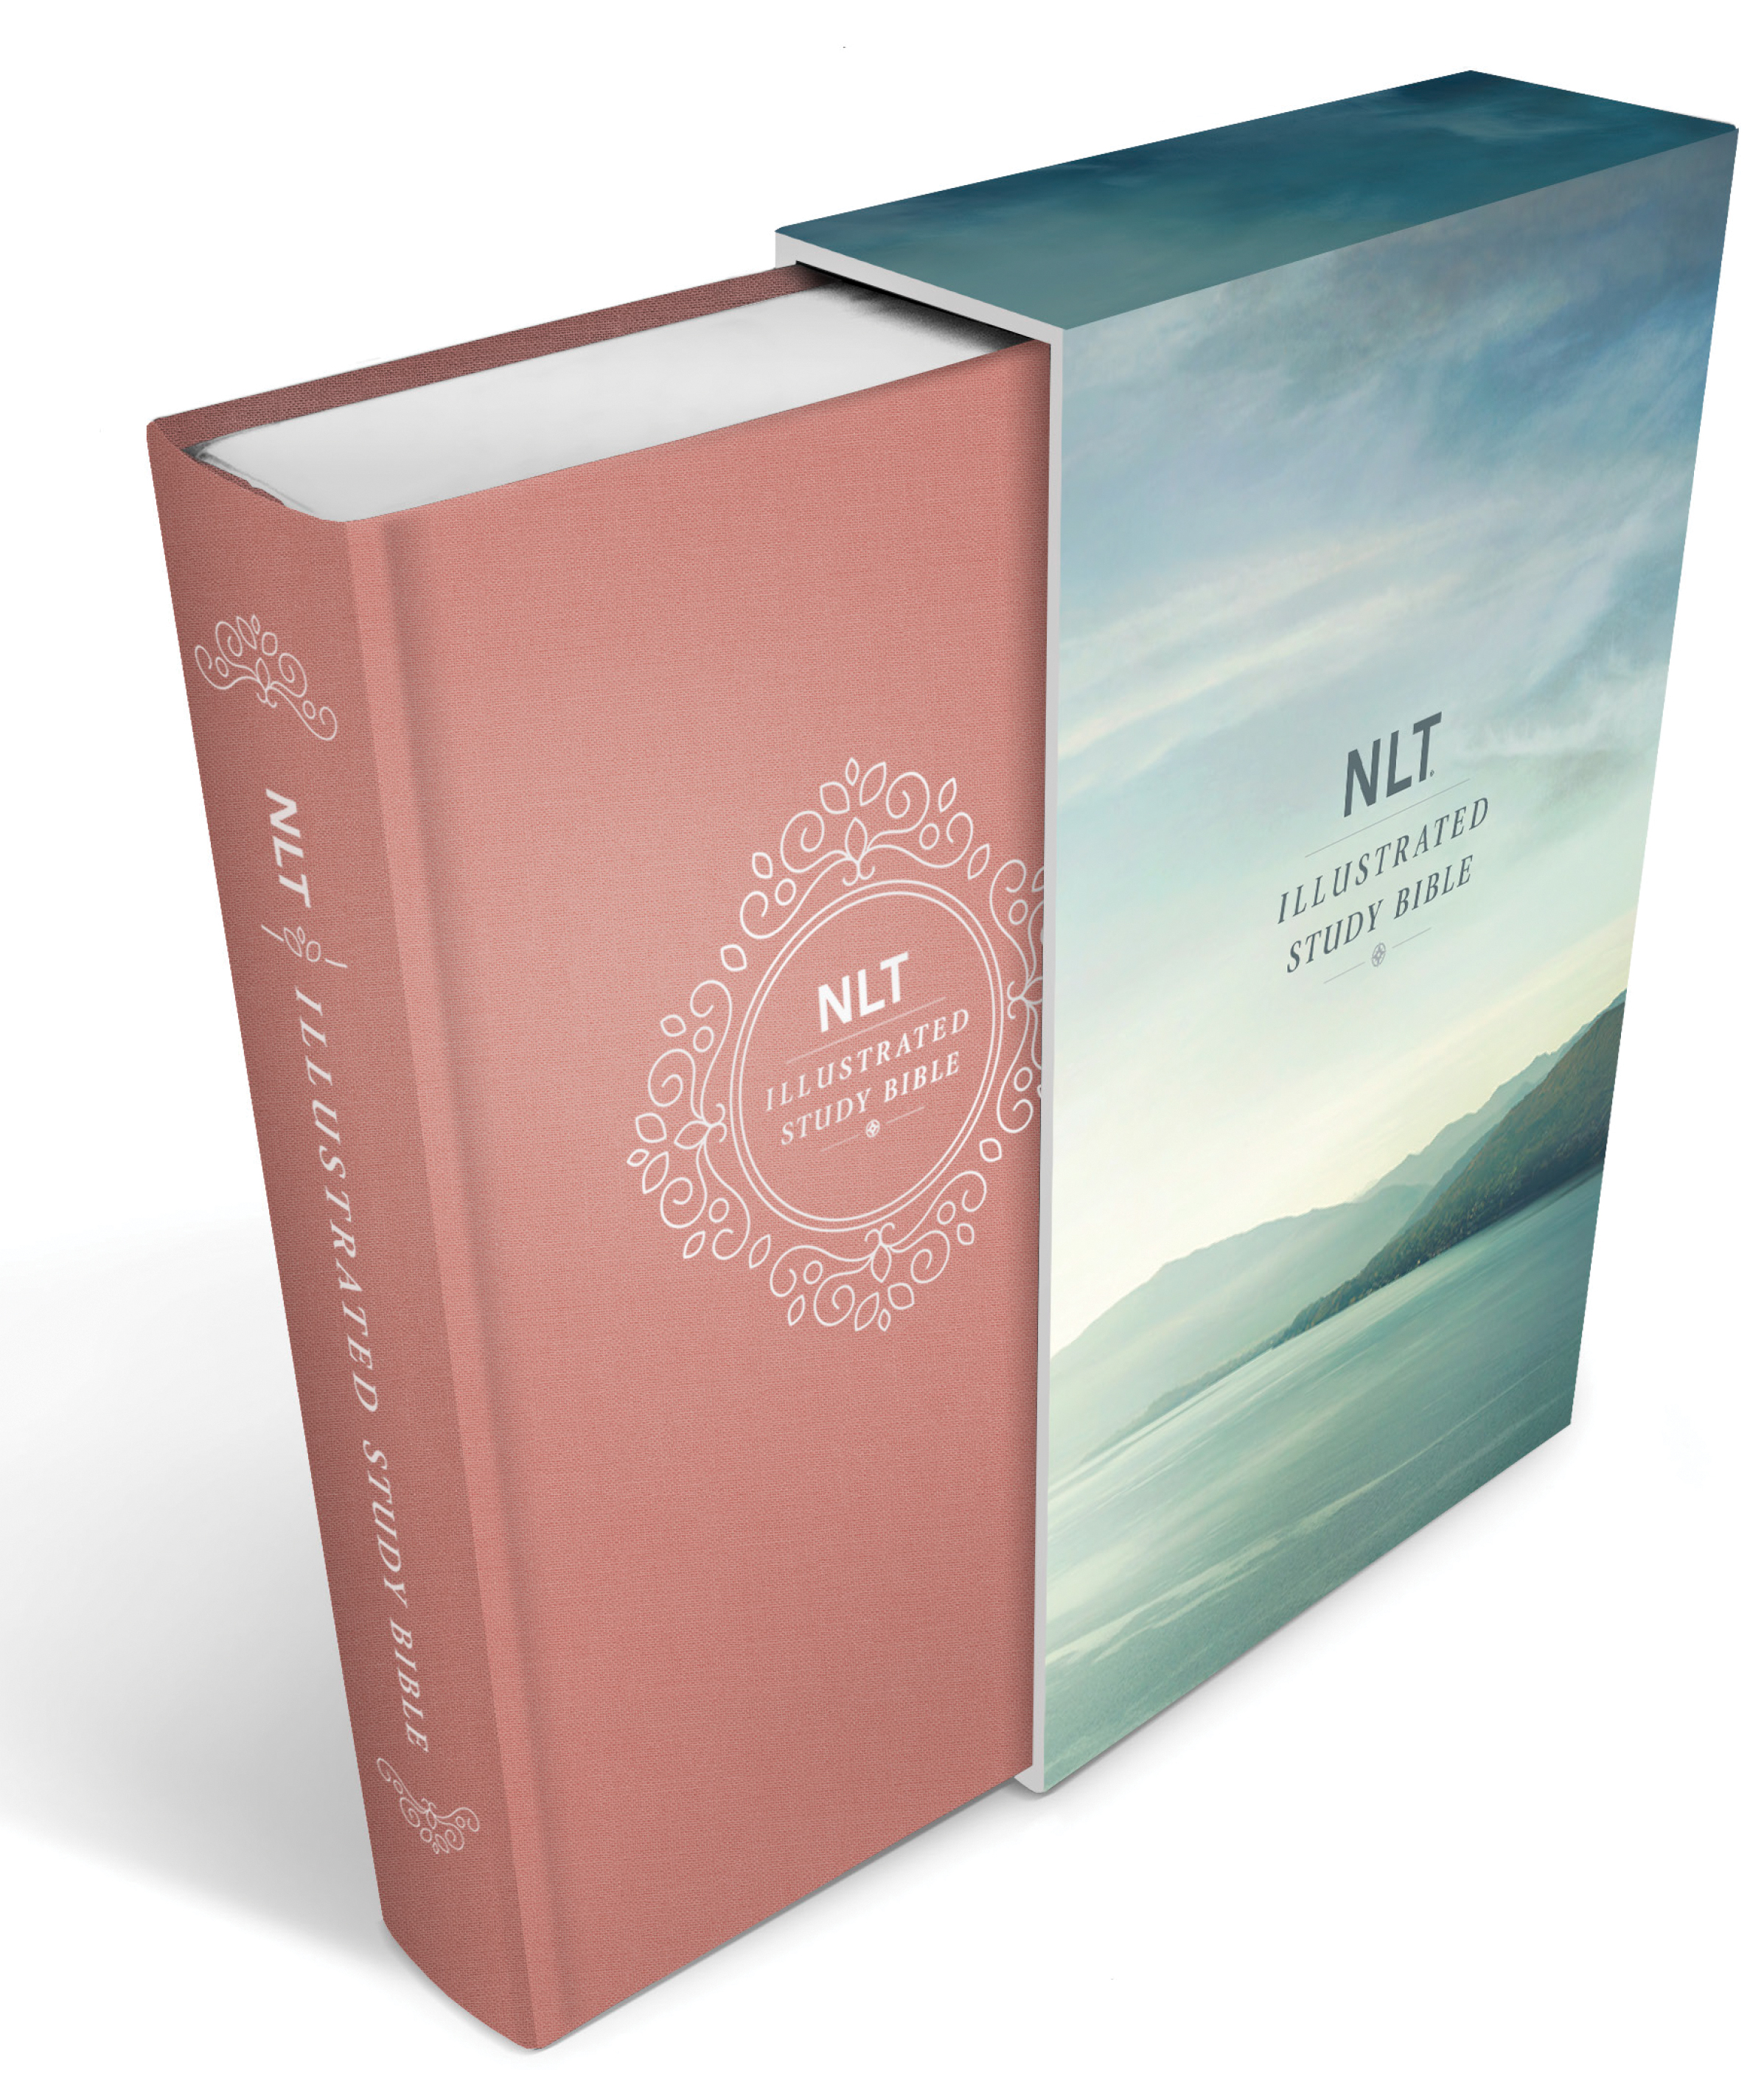 Tyndale | Illustrated Study Bible NLT Deluxe